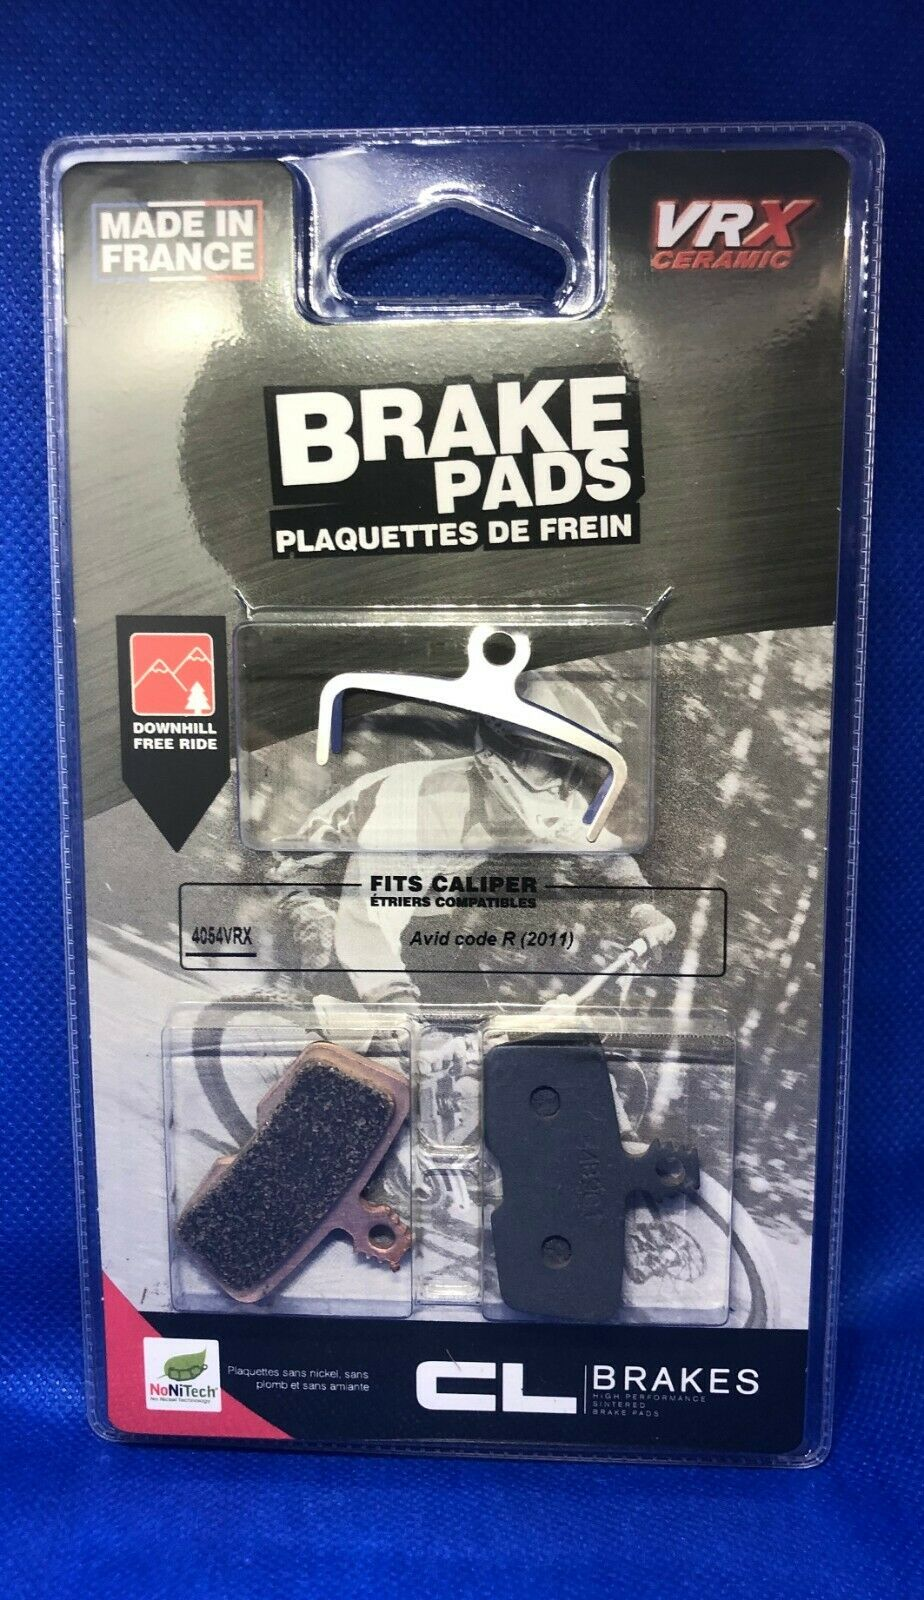 Pad brake compatible with AVID CODE R 2 11- sintered cl brakes vrx avid code